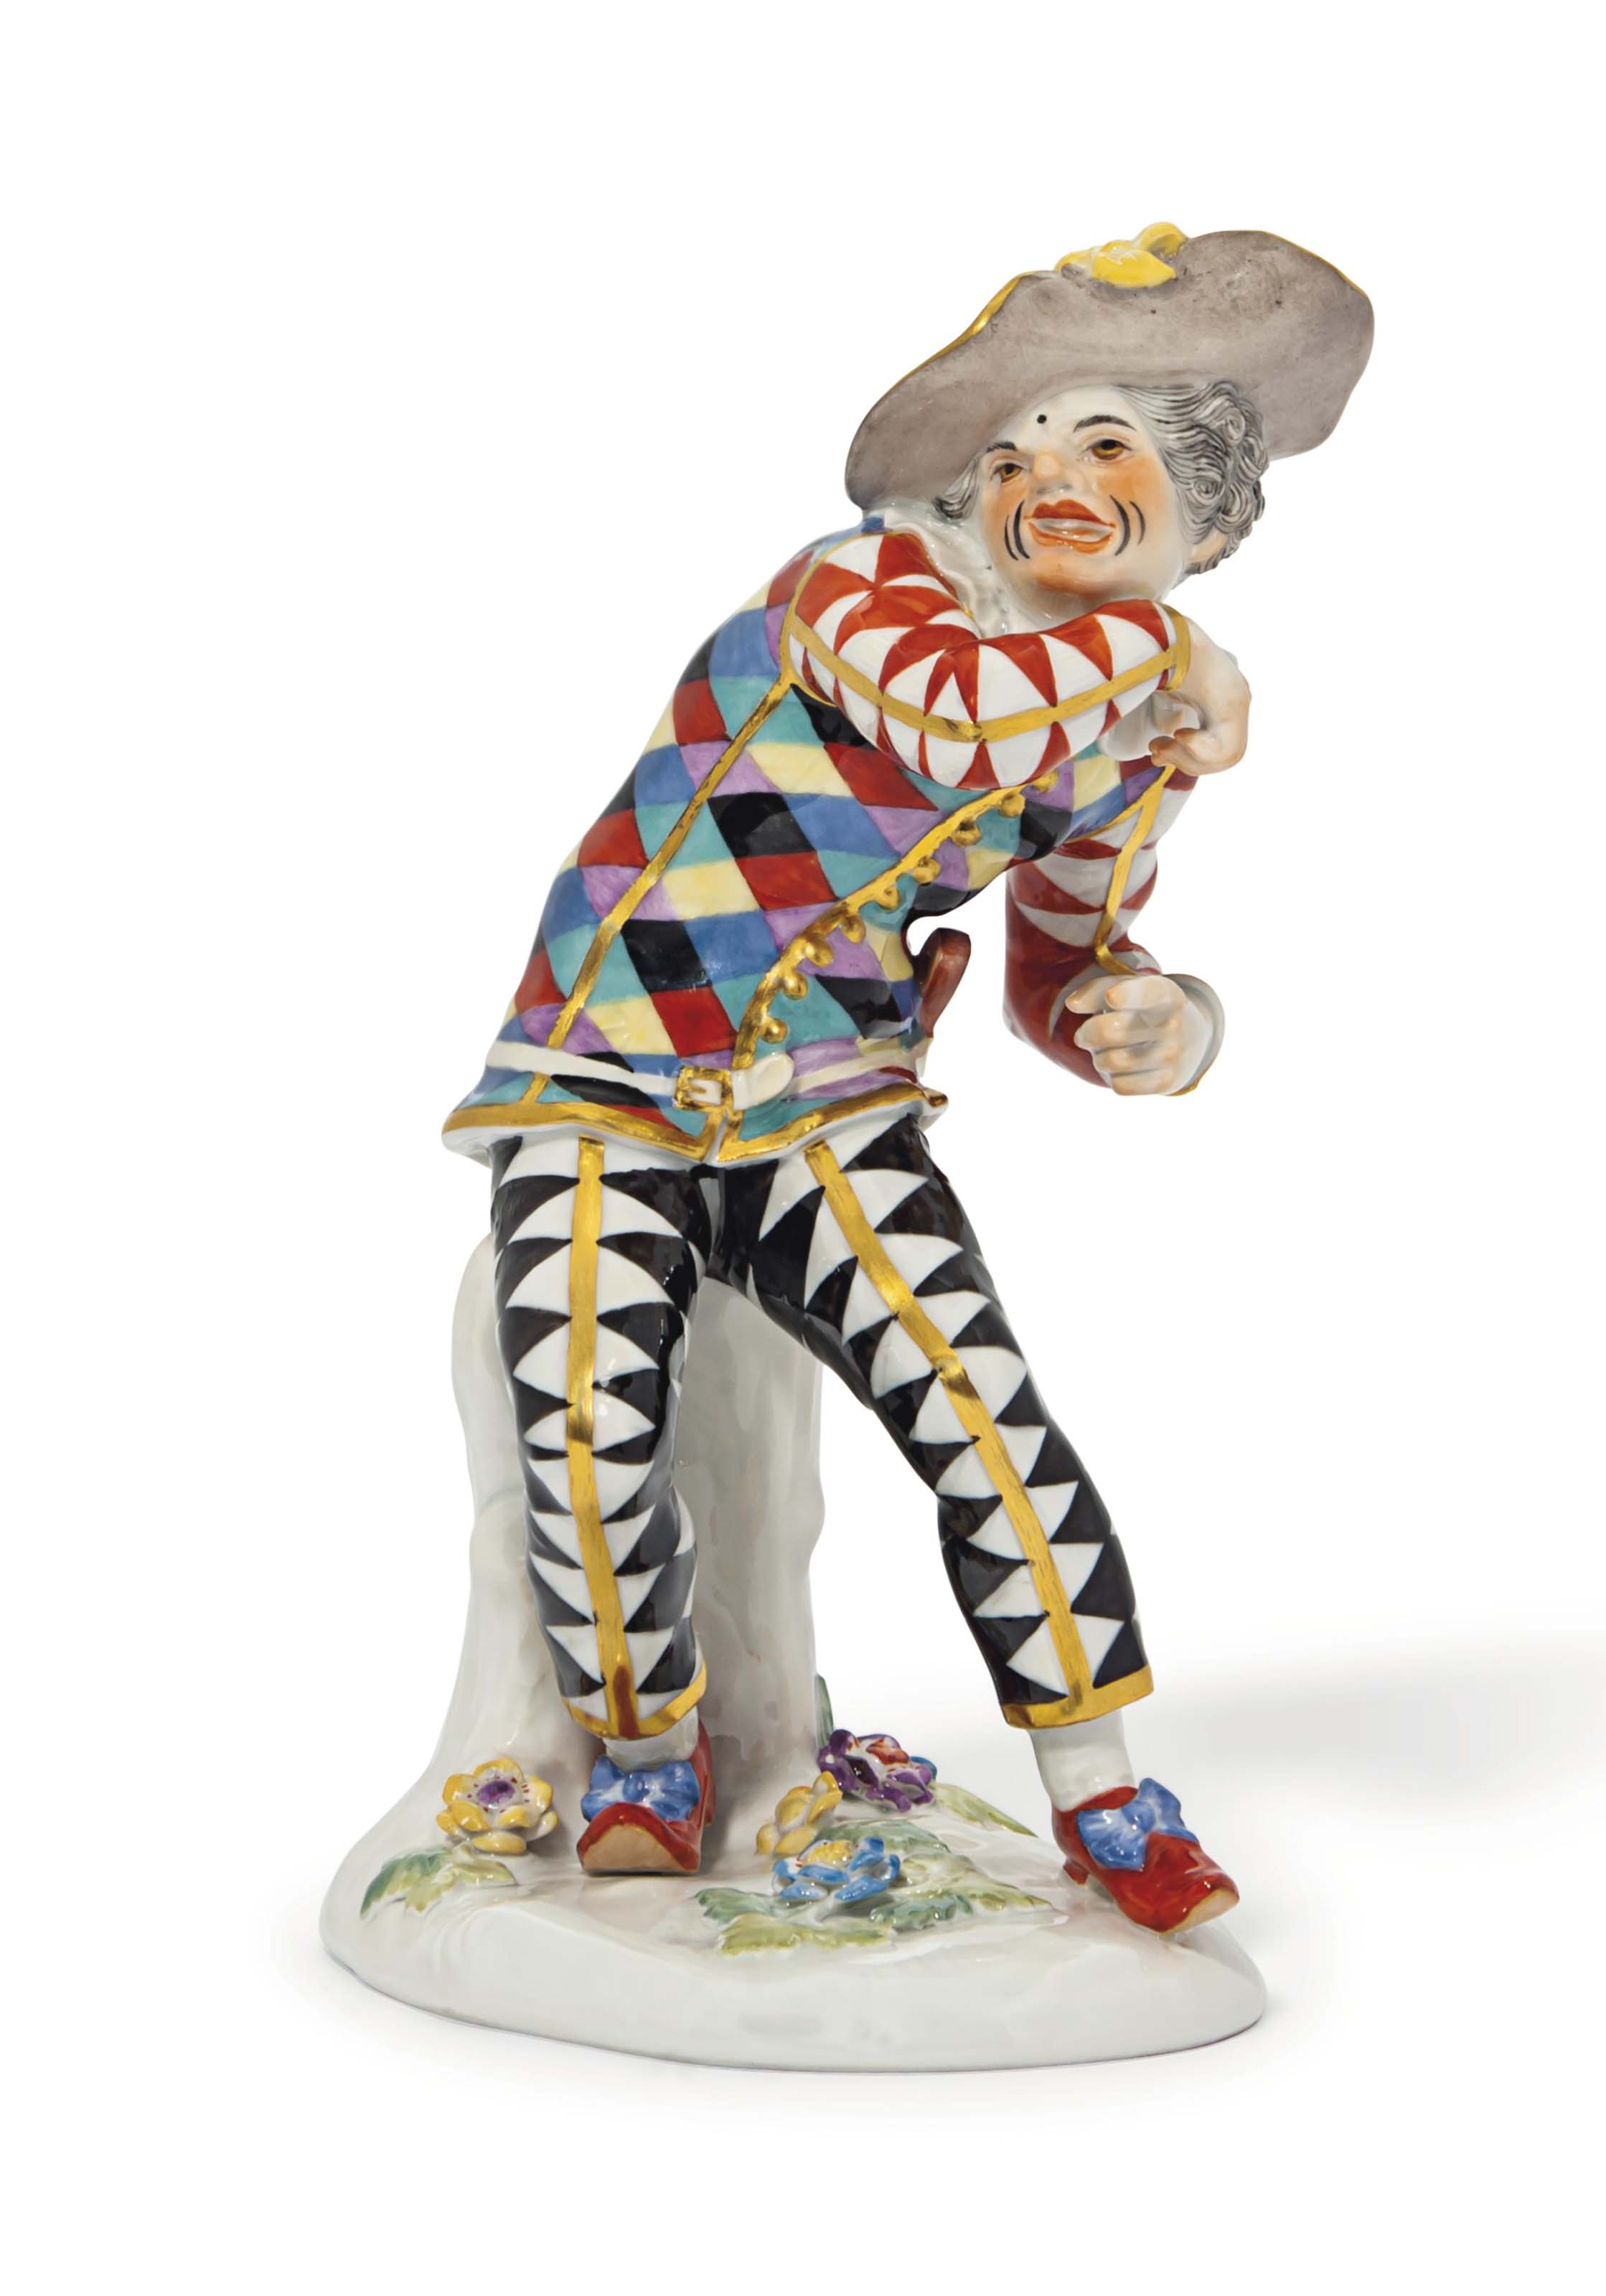 A MEISSEN FIGURE OF THE GRIMAC